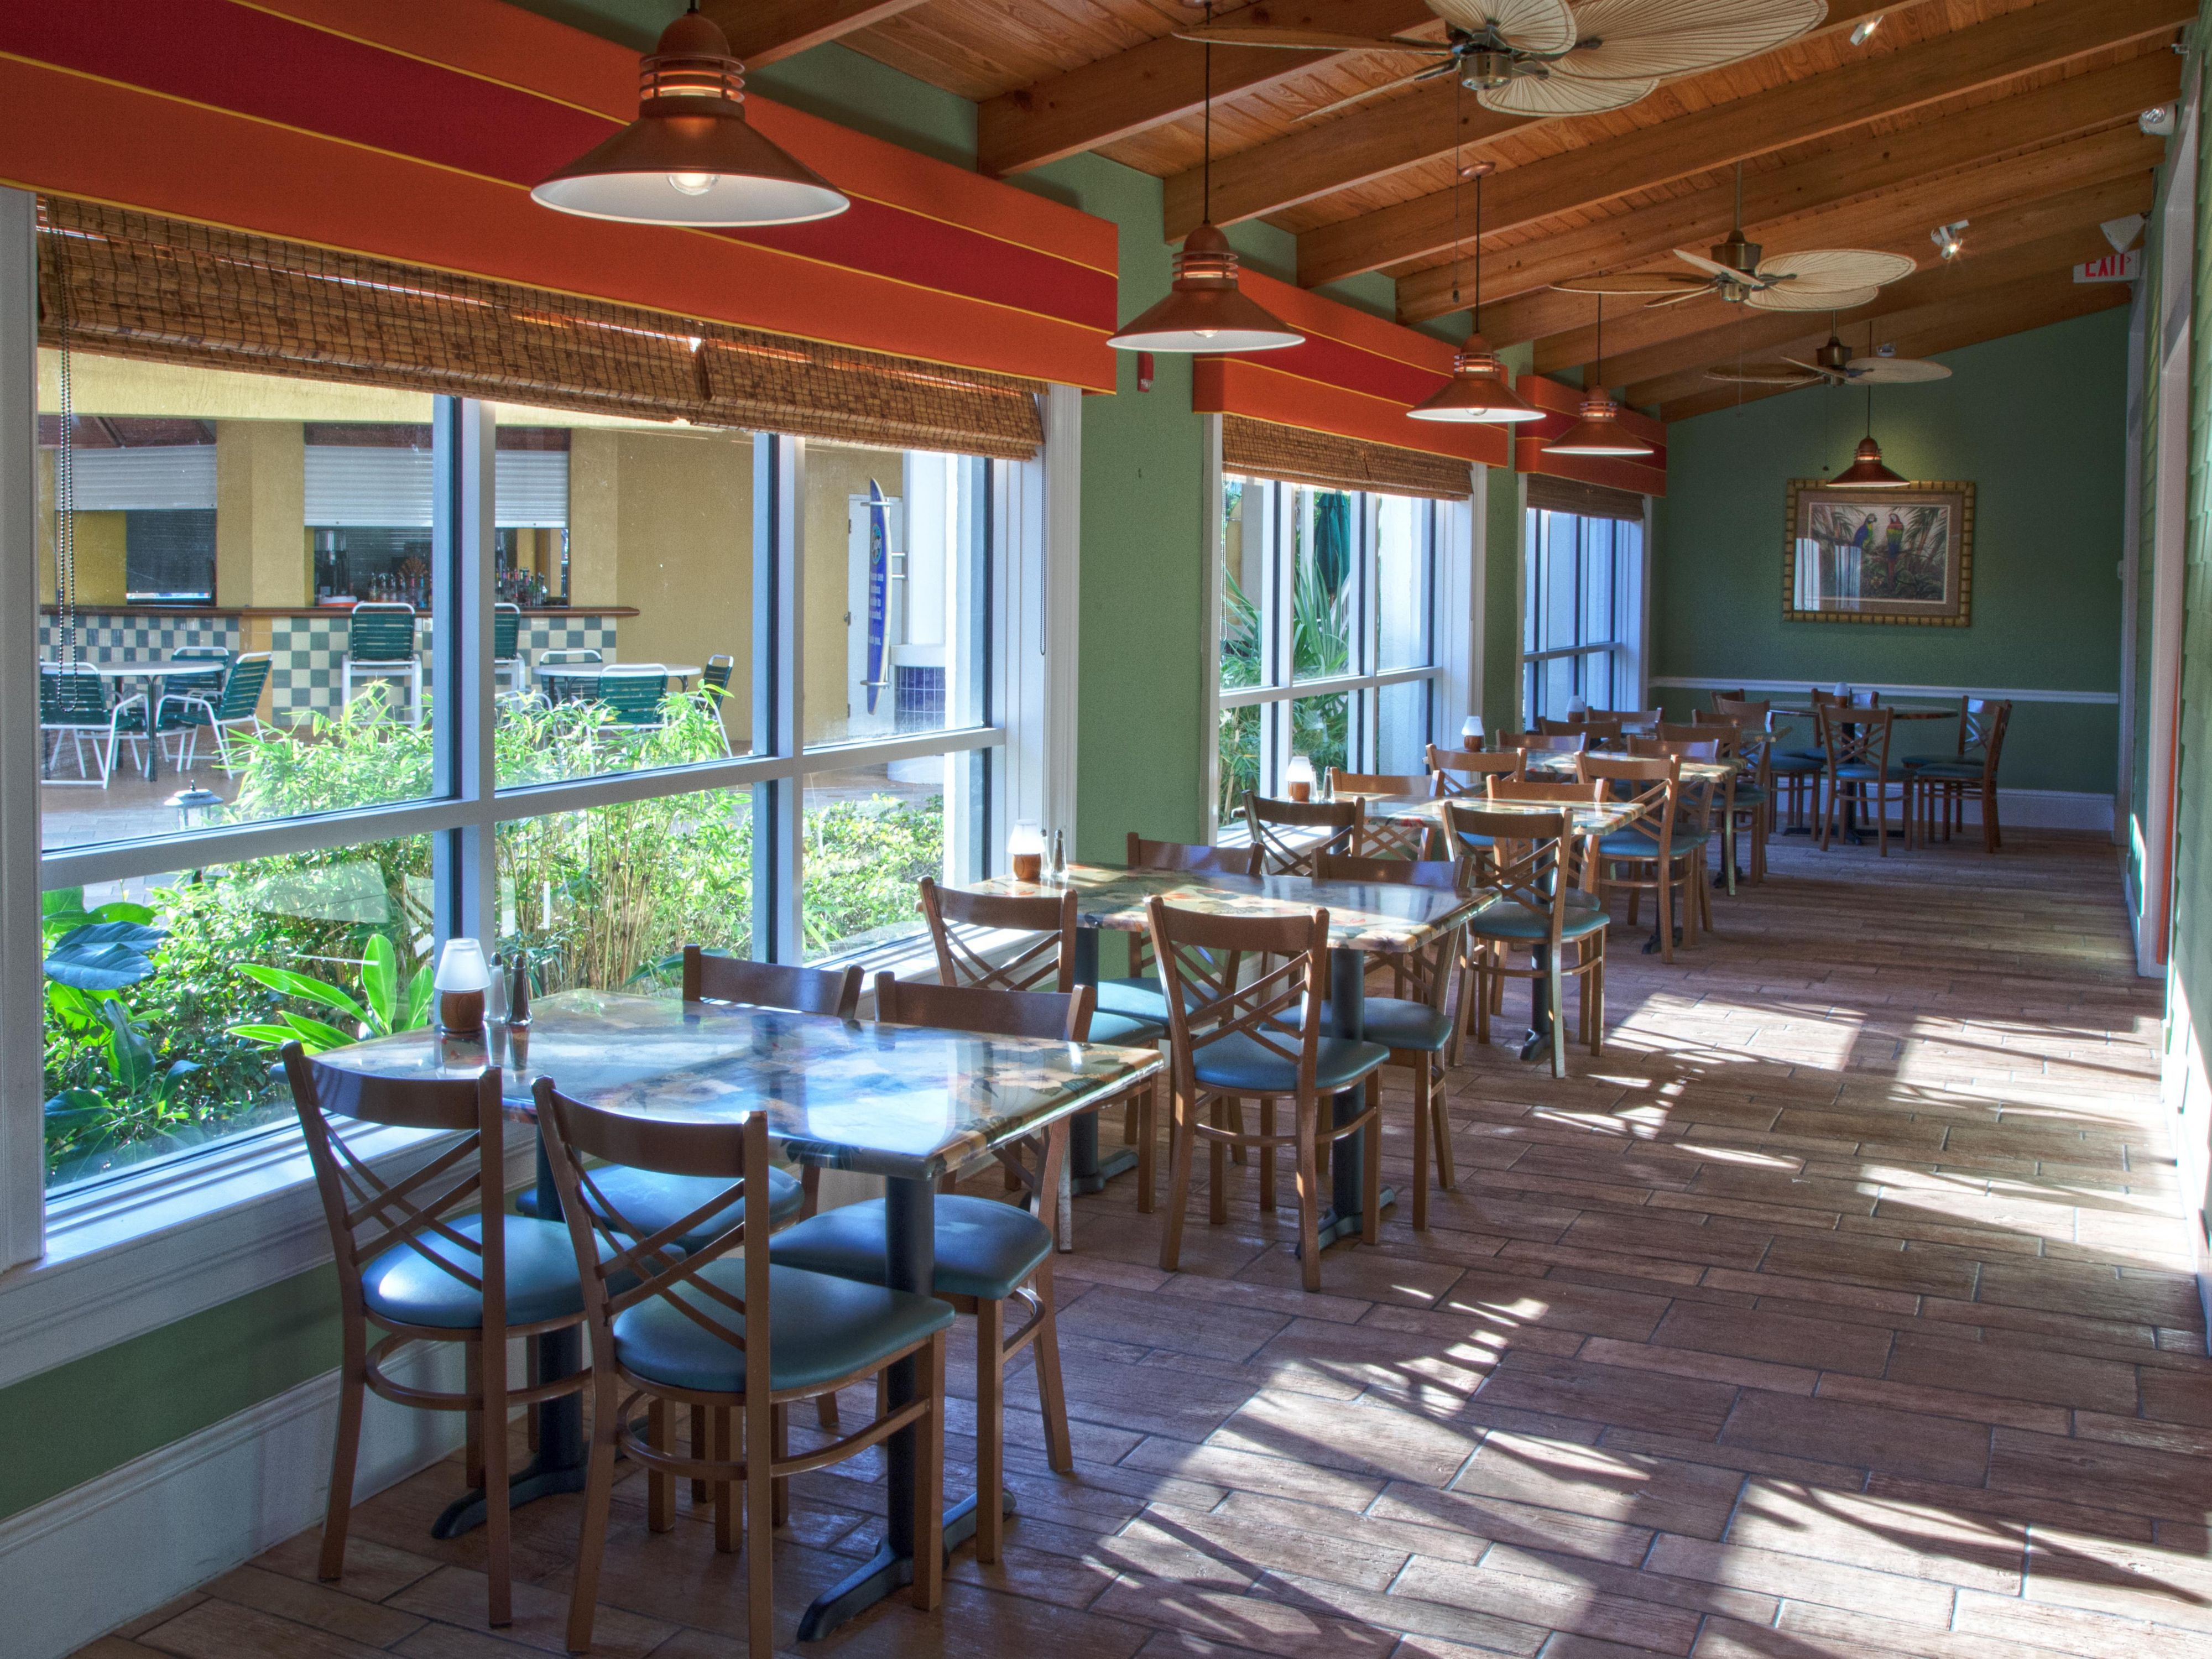 Guests can dine onsite at Cape Grill & Bar